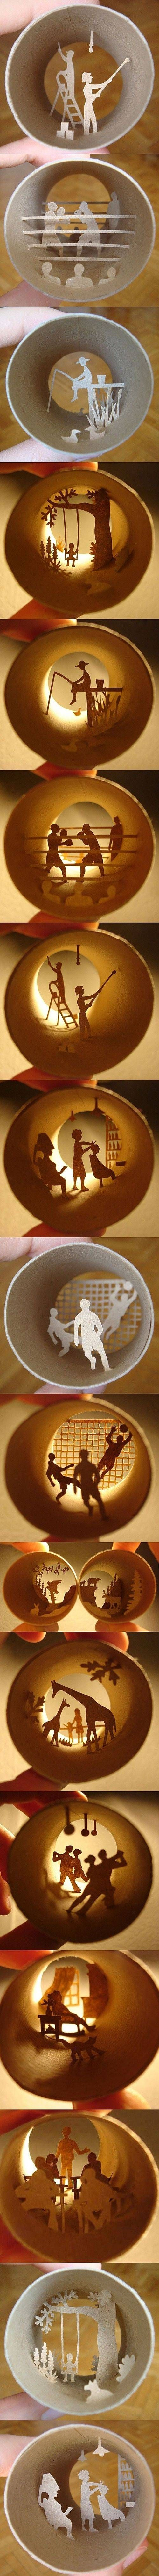 Cylindrical paper arts - I don't like coffee but I just may have to start drinking it to get the cups!